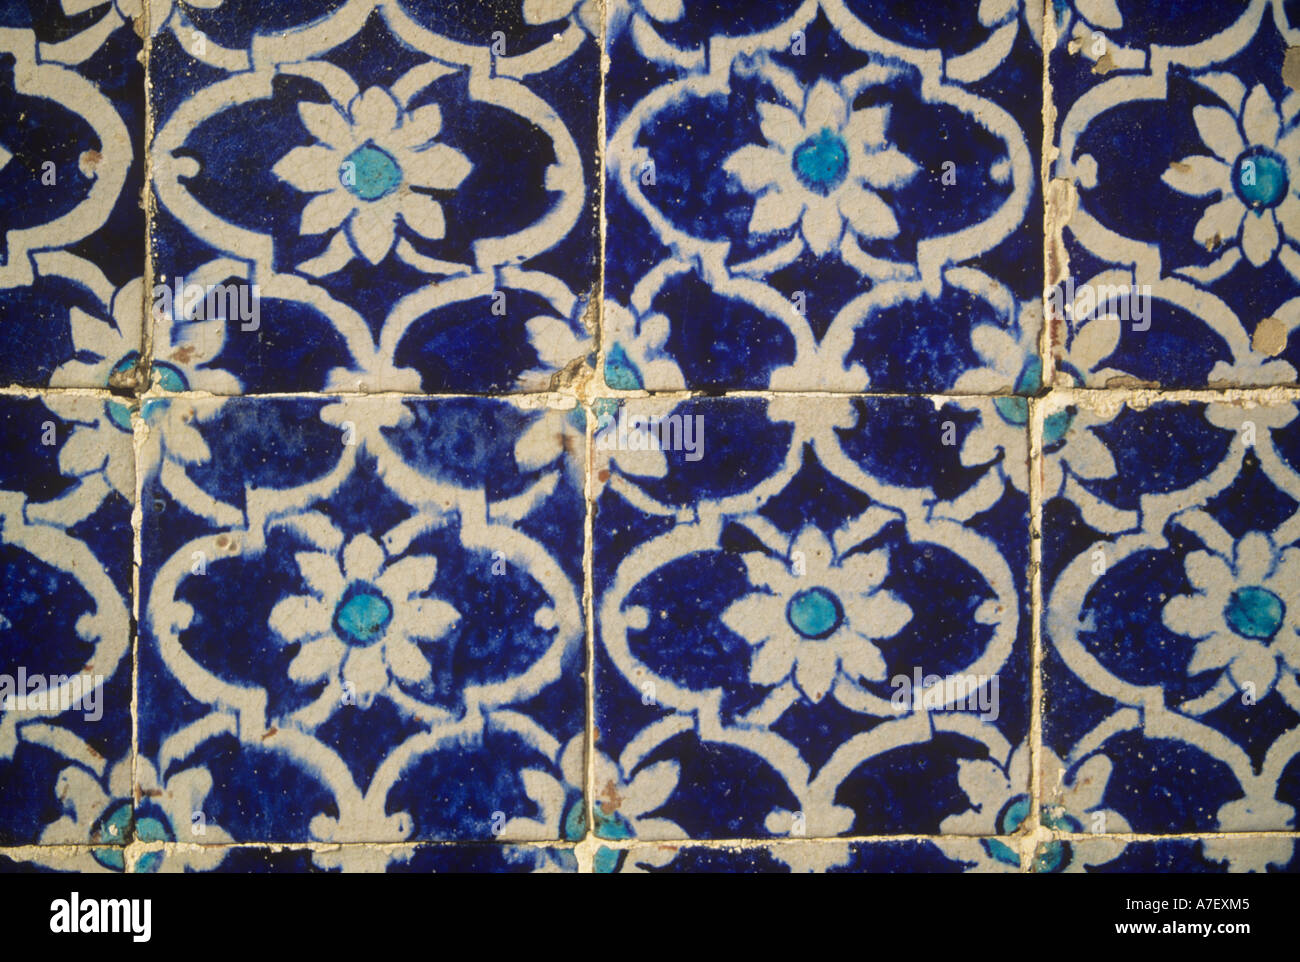 Tilework on a Kalhora Mosque, c.17th-18th, Sindh, Pakistan - Stock Image